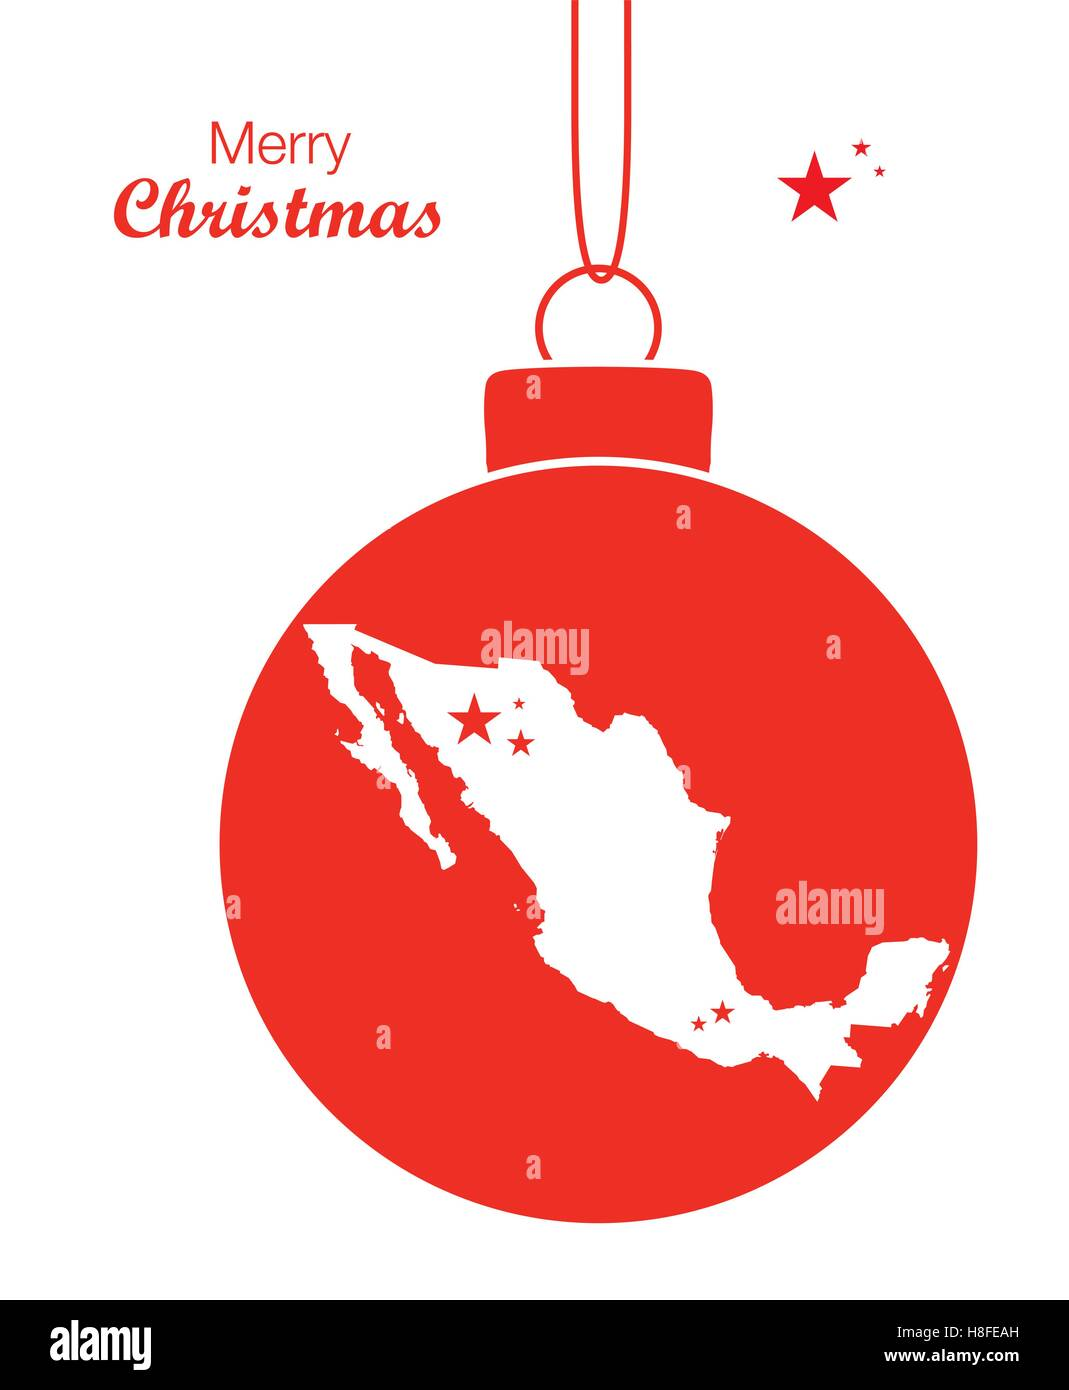 Merry Christmas Map Mexico - Stock Image